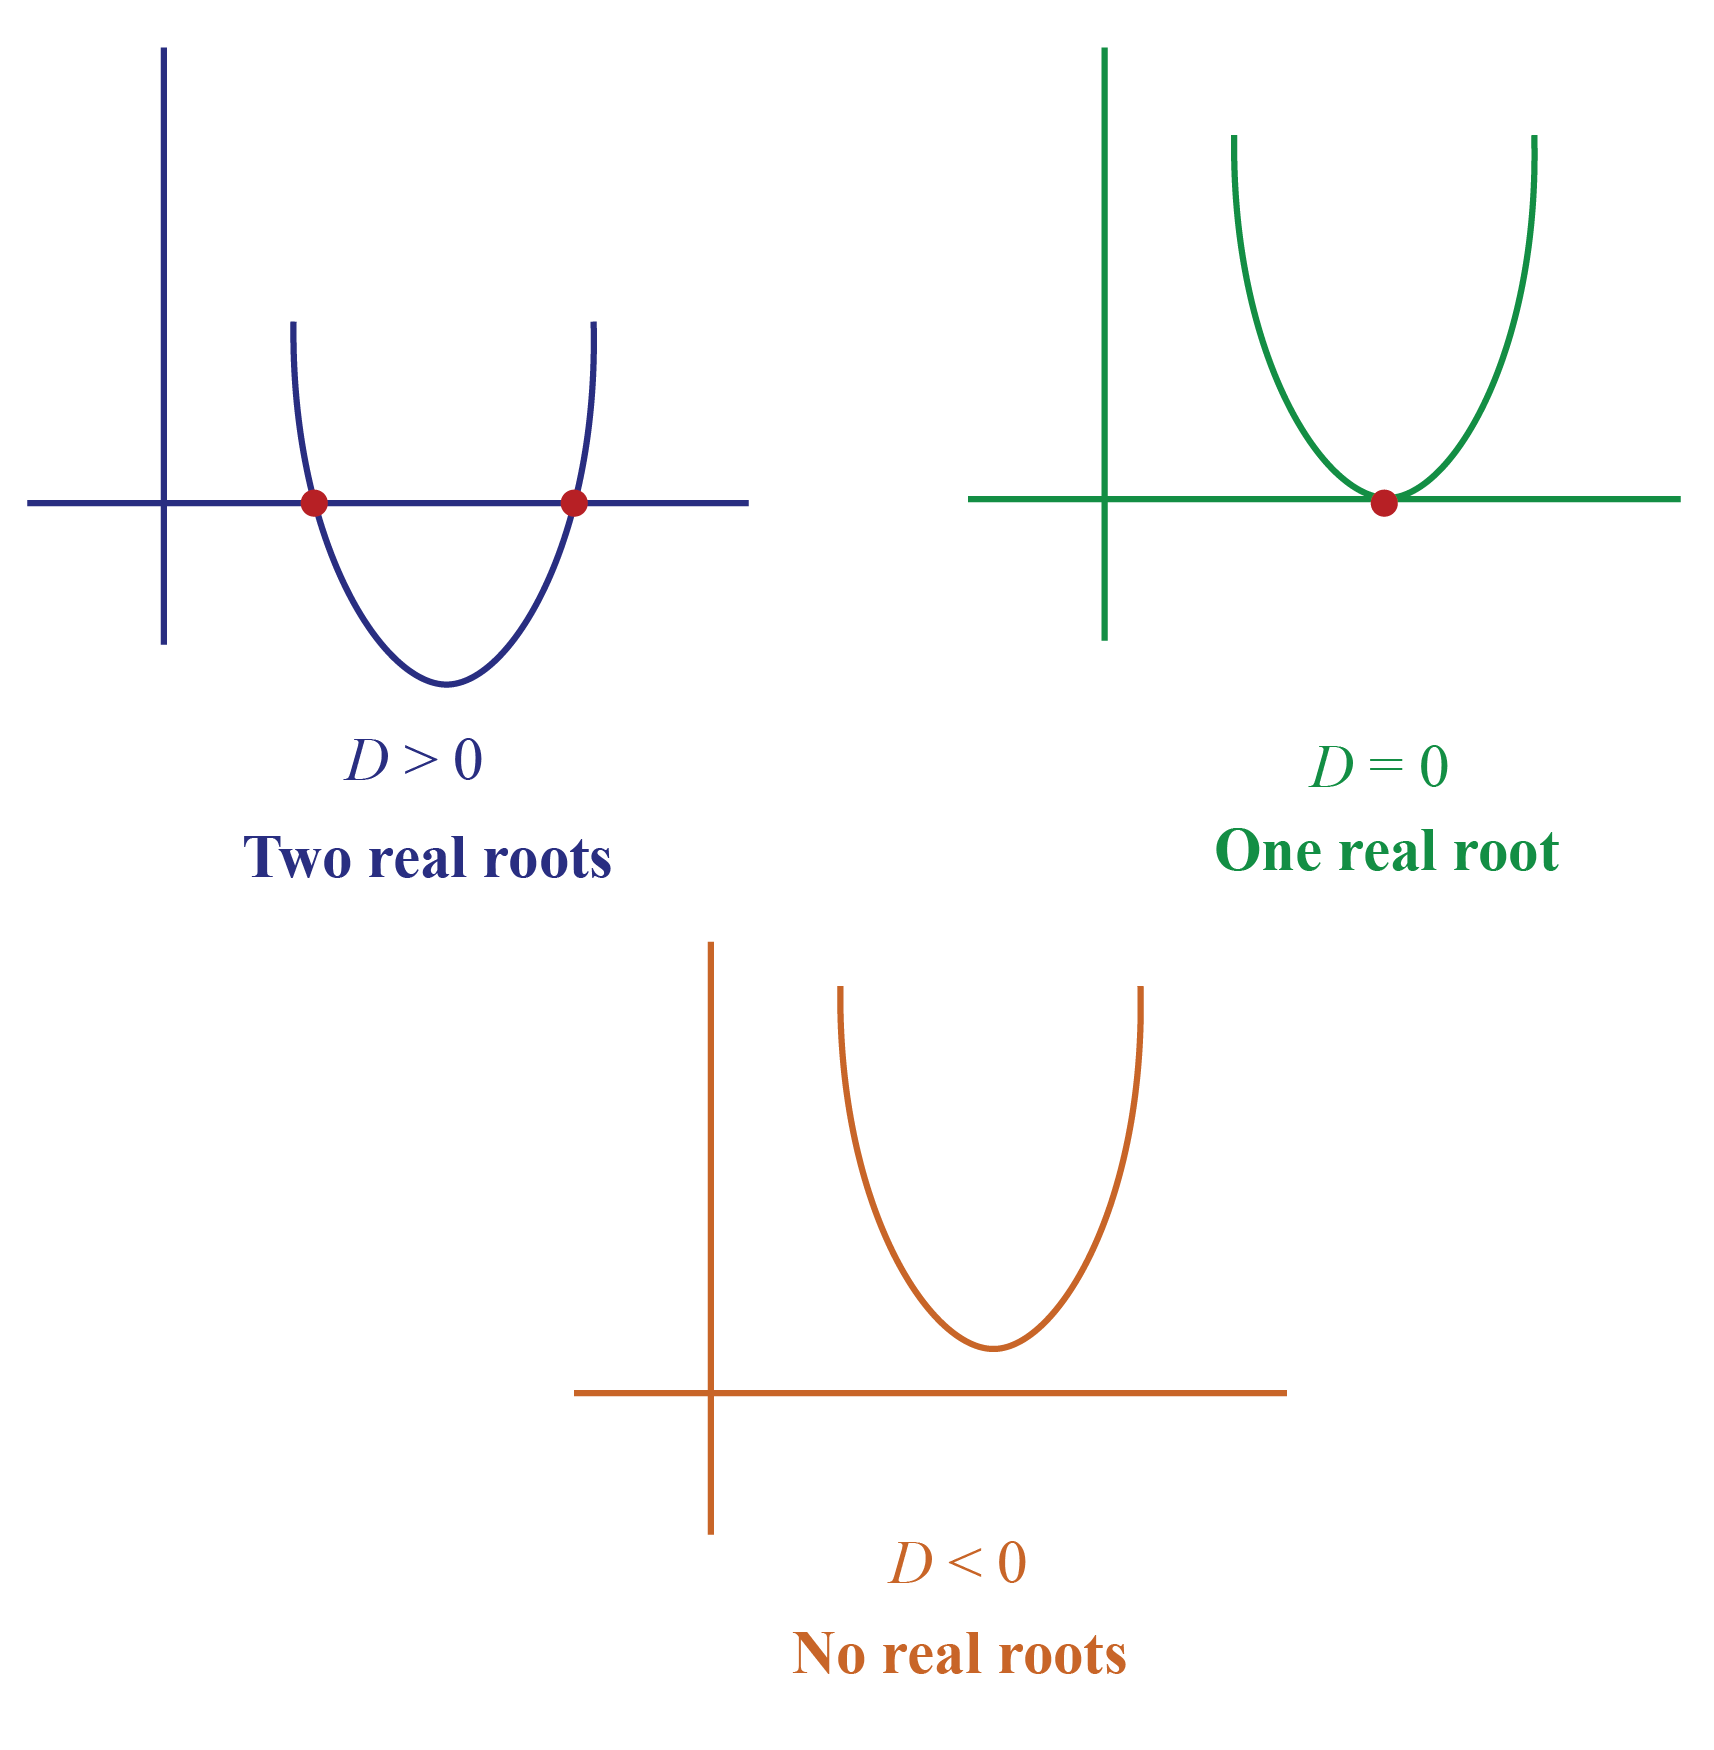 Relation between discriminant and the nature of the roots is shown using graphs.